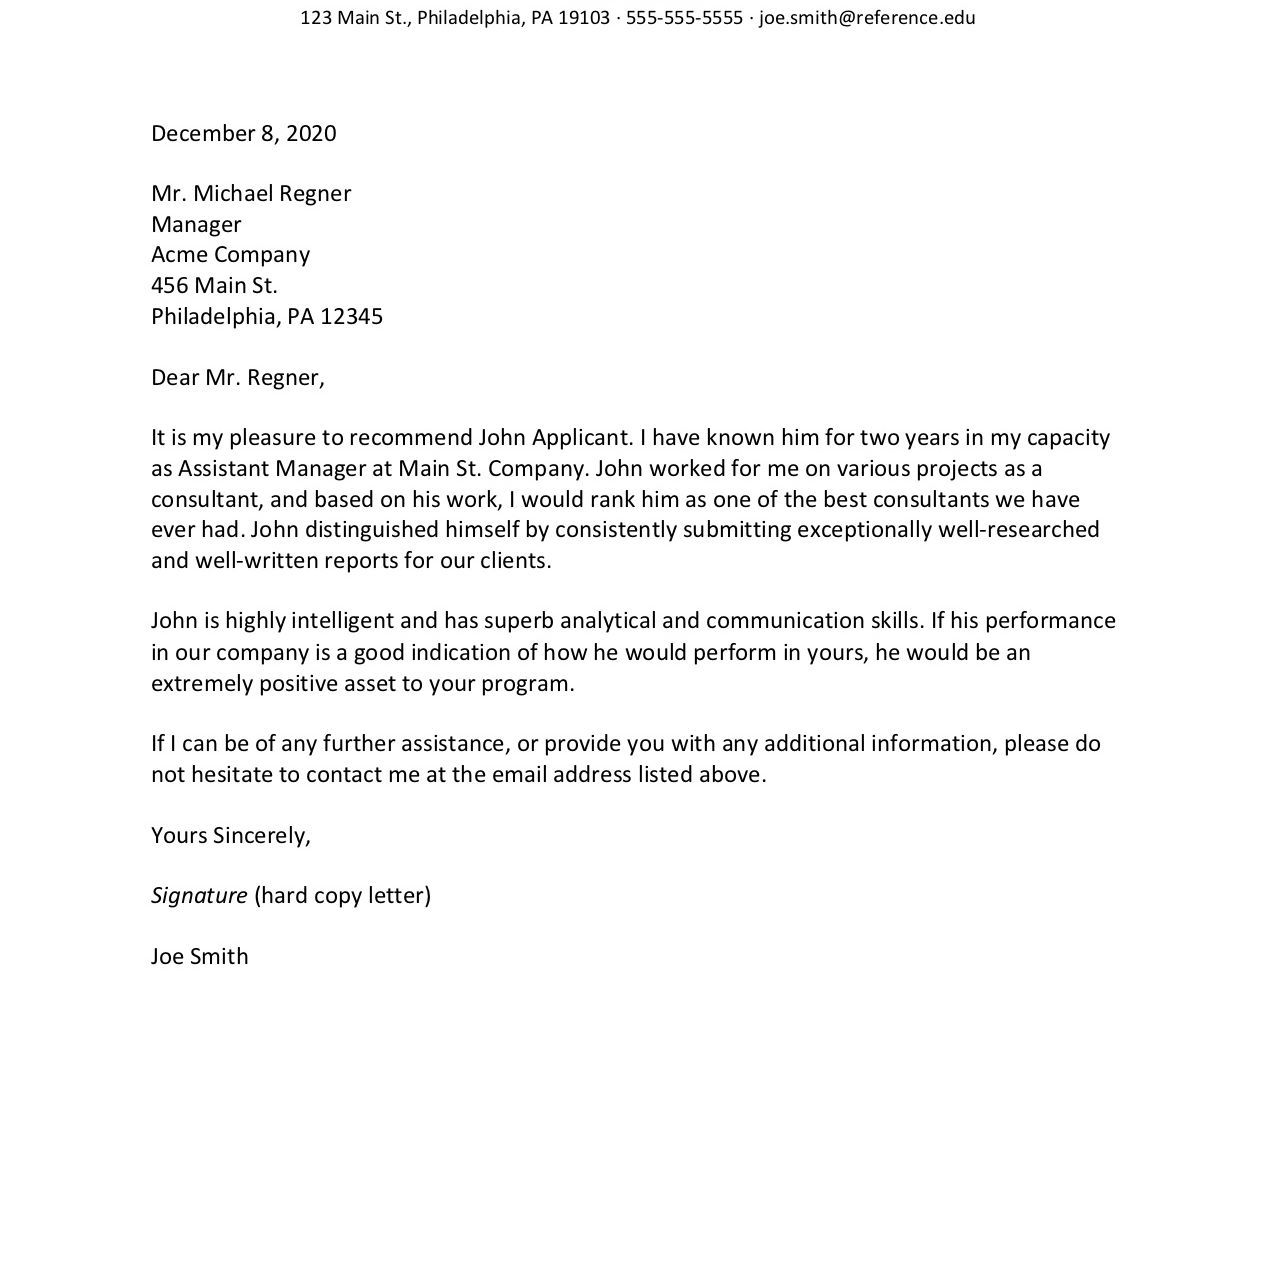 How to write a good job reference letter creative essay topics for grade 6